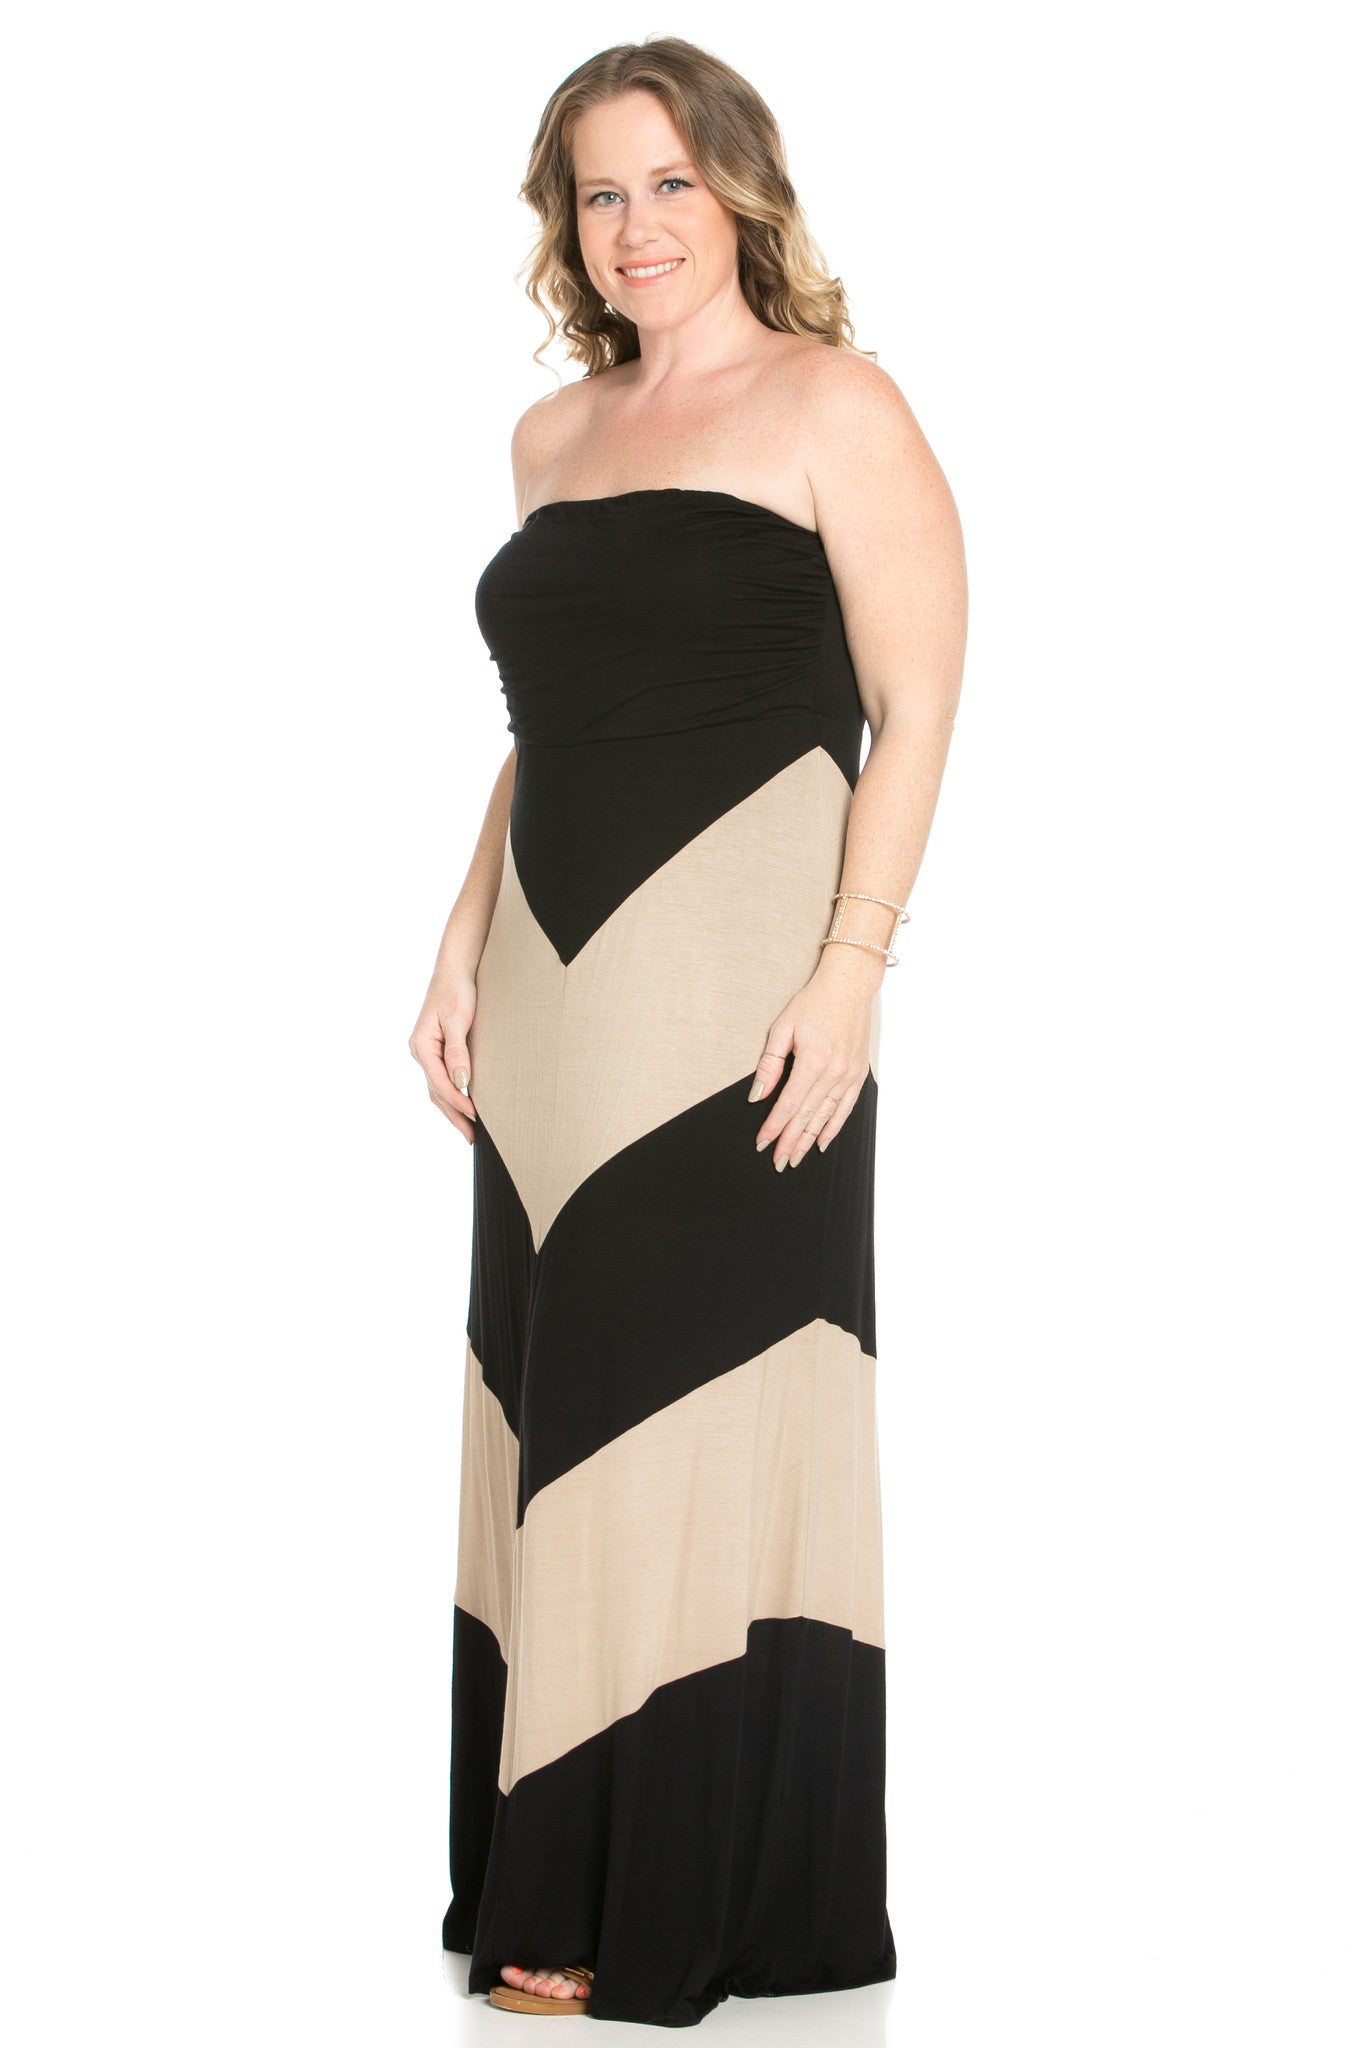 Strapless Long tube Dress  Black/Taupe Cause You're Chevron - Dresses - My Yuccie - 2